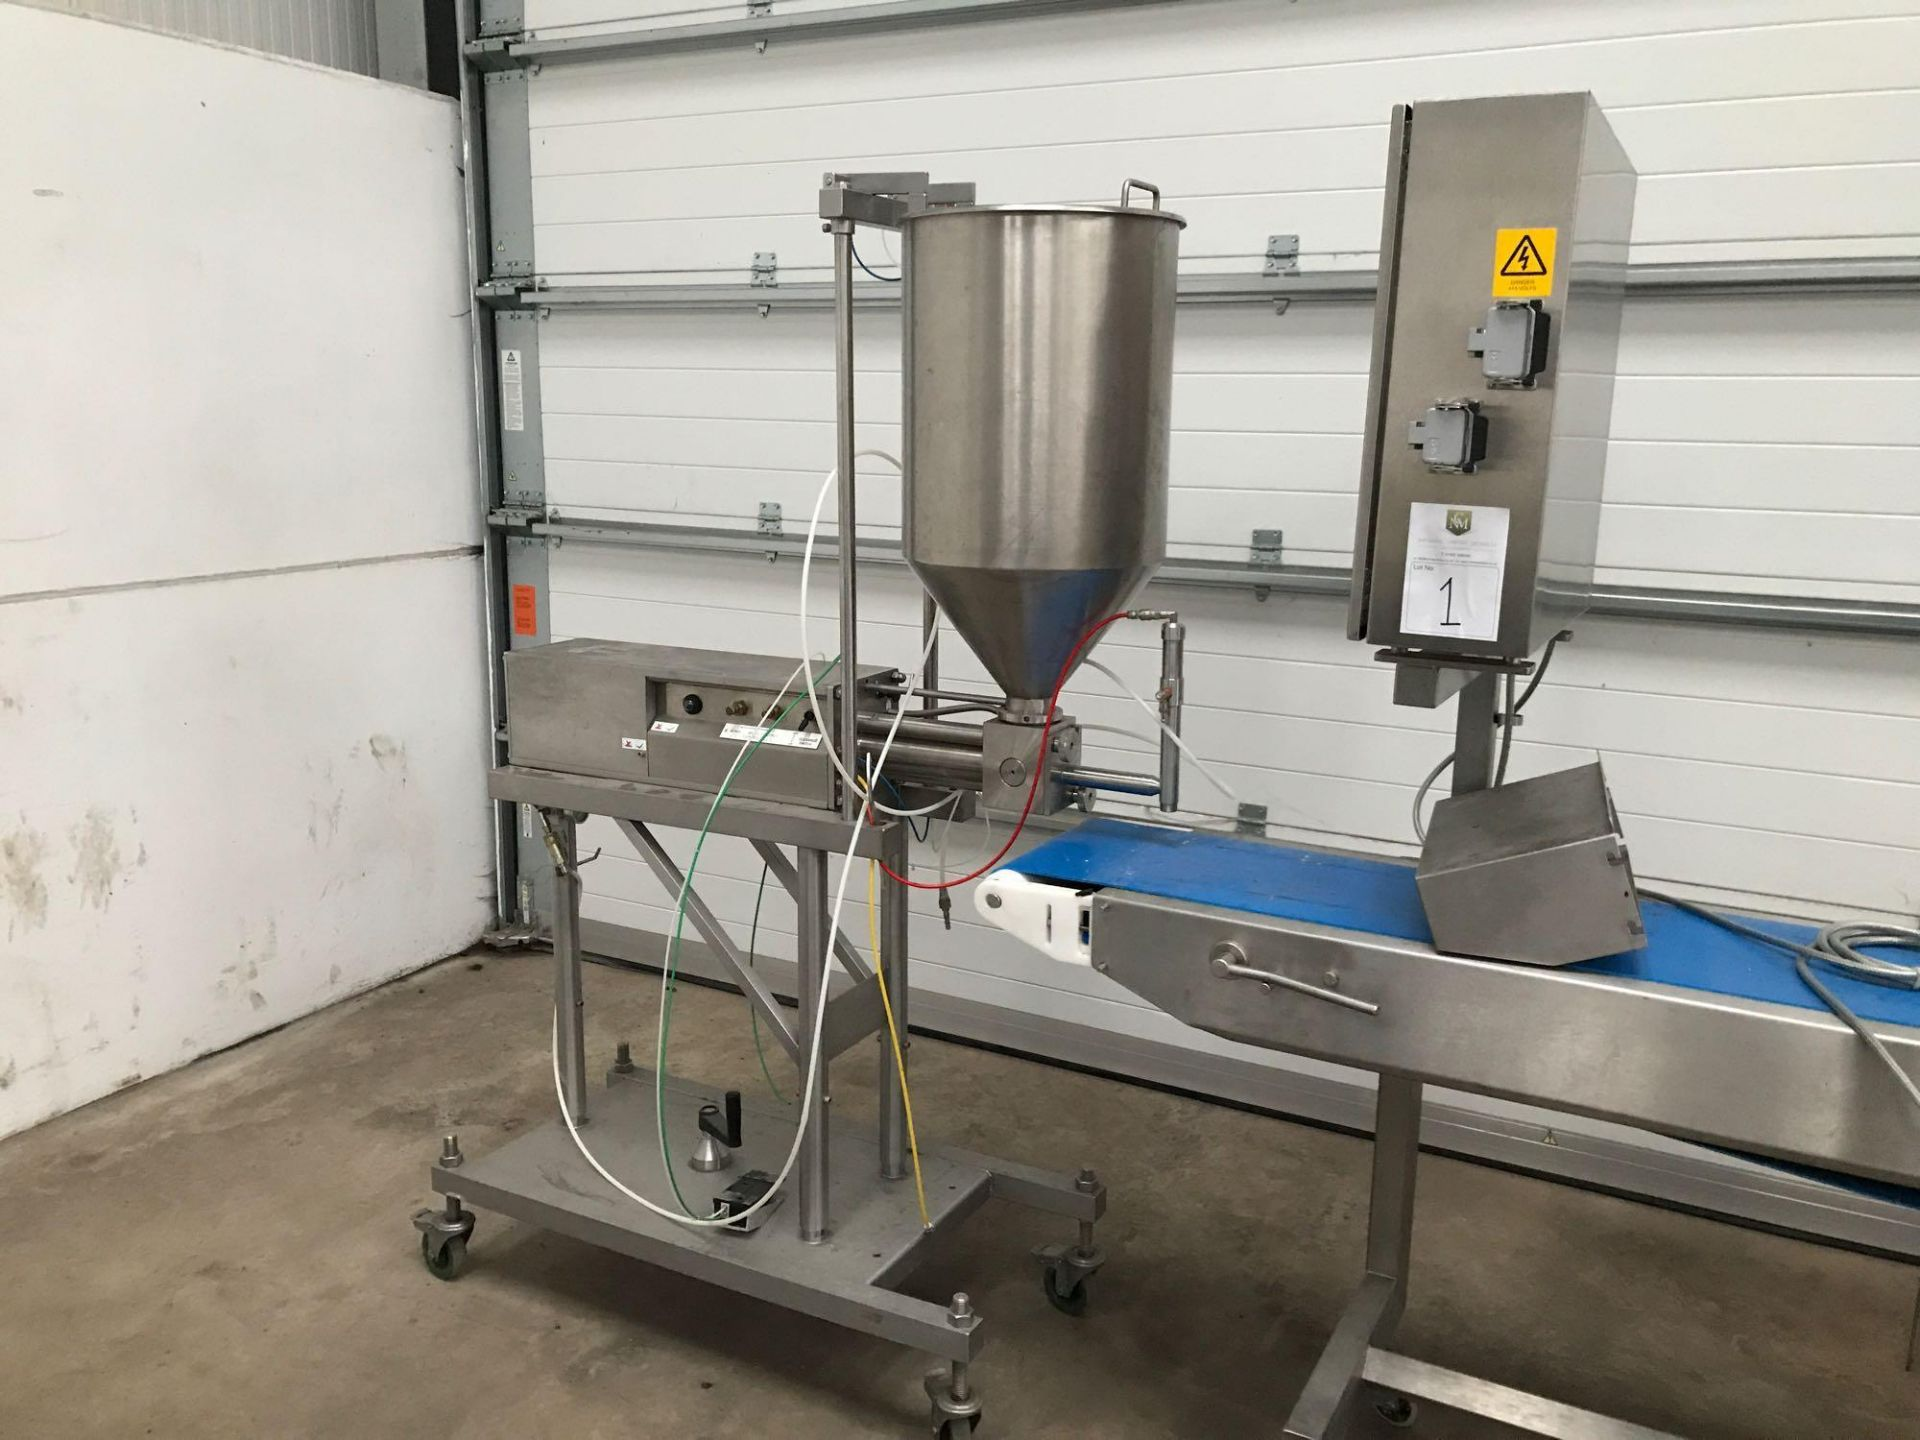 Lot 187 - Sauce distribution machine to include a 4 meter by 0.4 meter conveyor